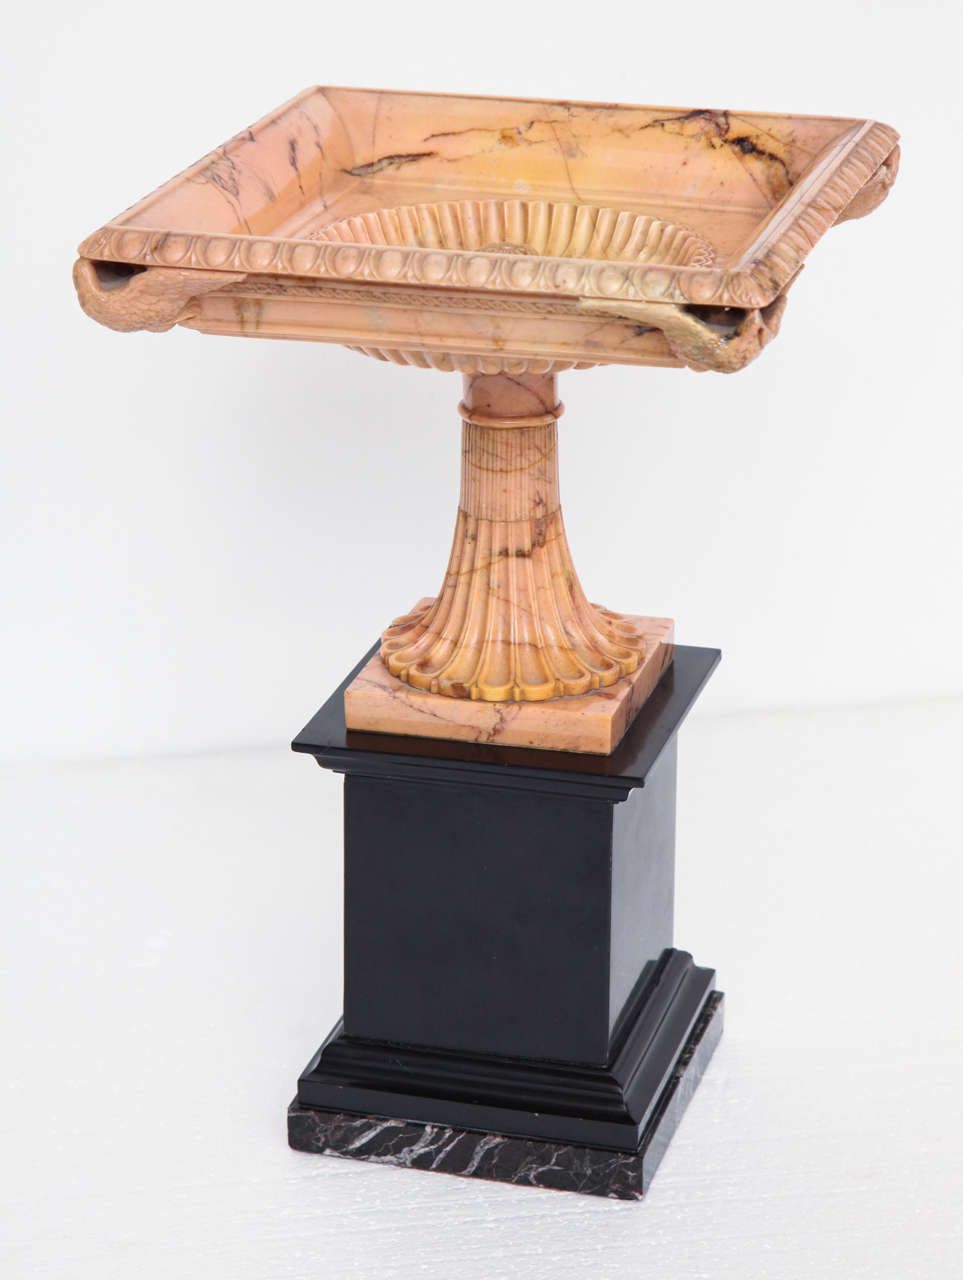 Hand-Carved A Superb Sienna Marble 19th Century Tazza on a Marble Plinth For Sale